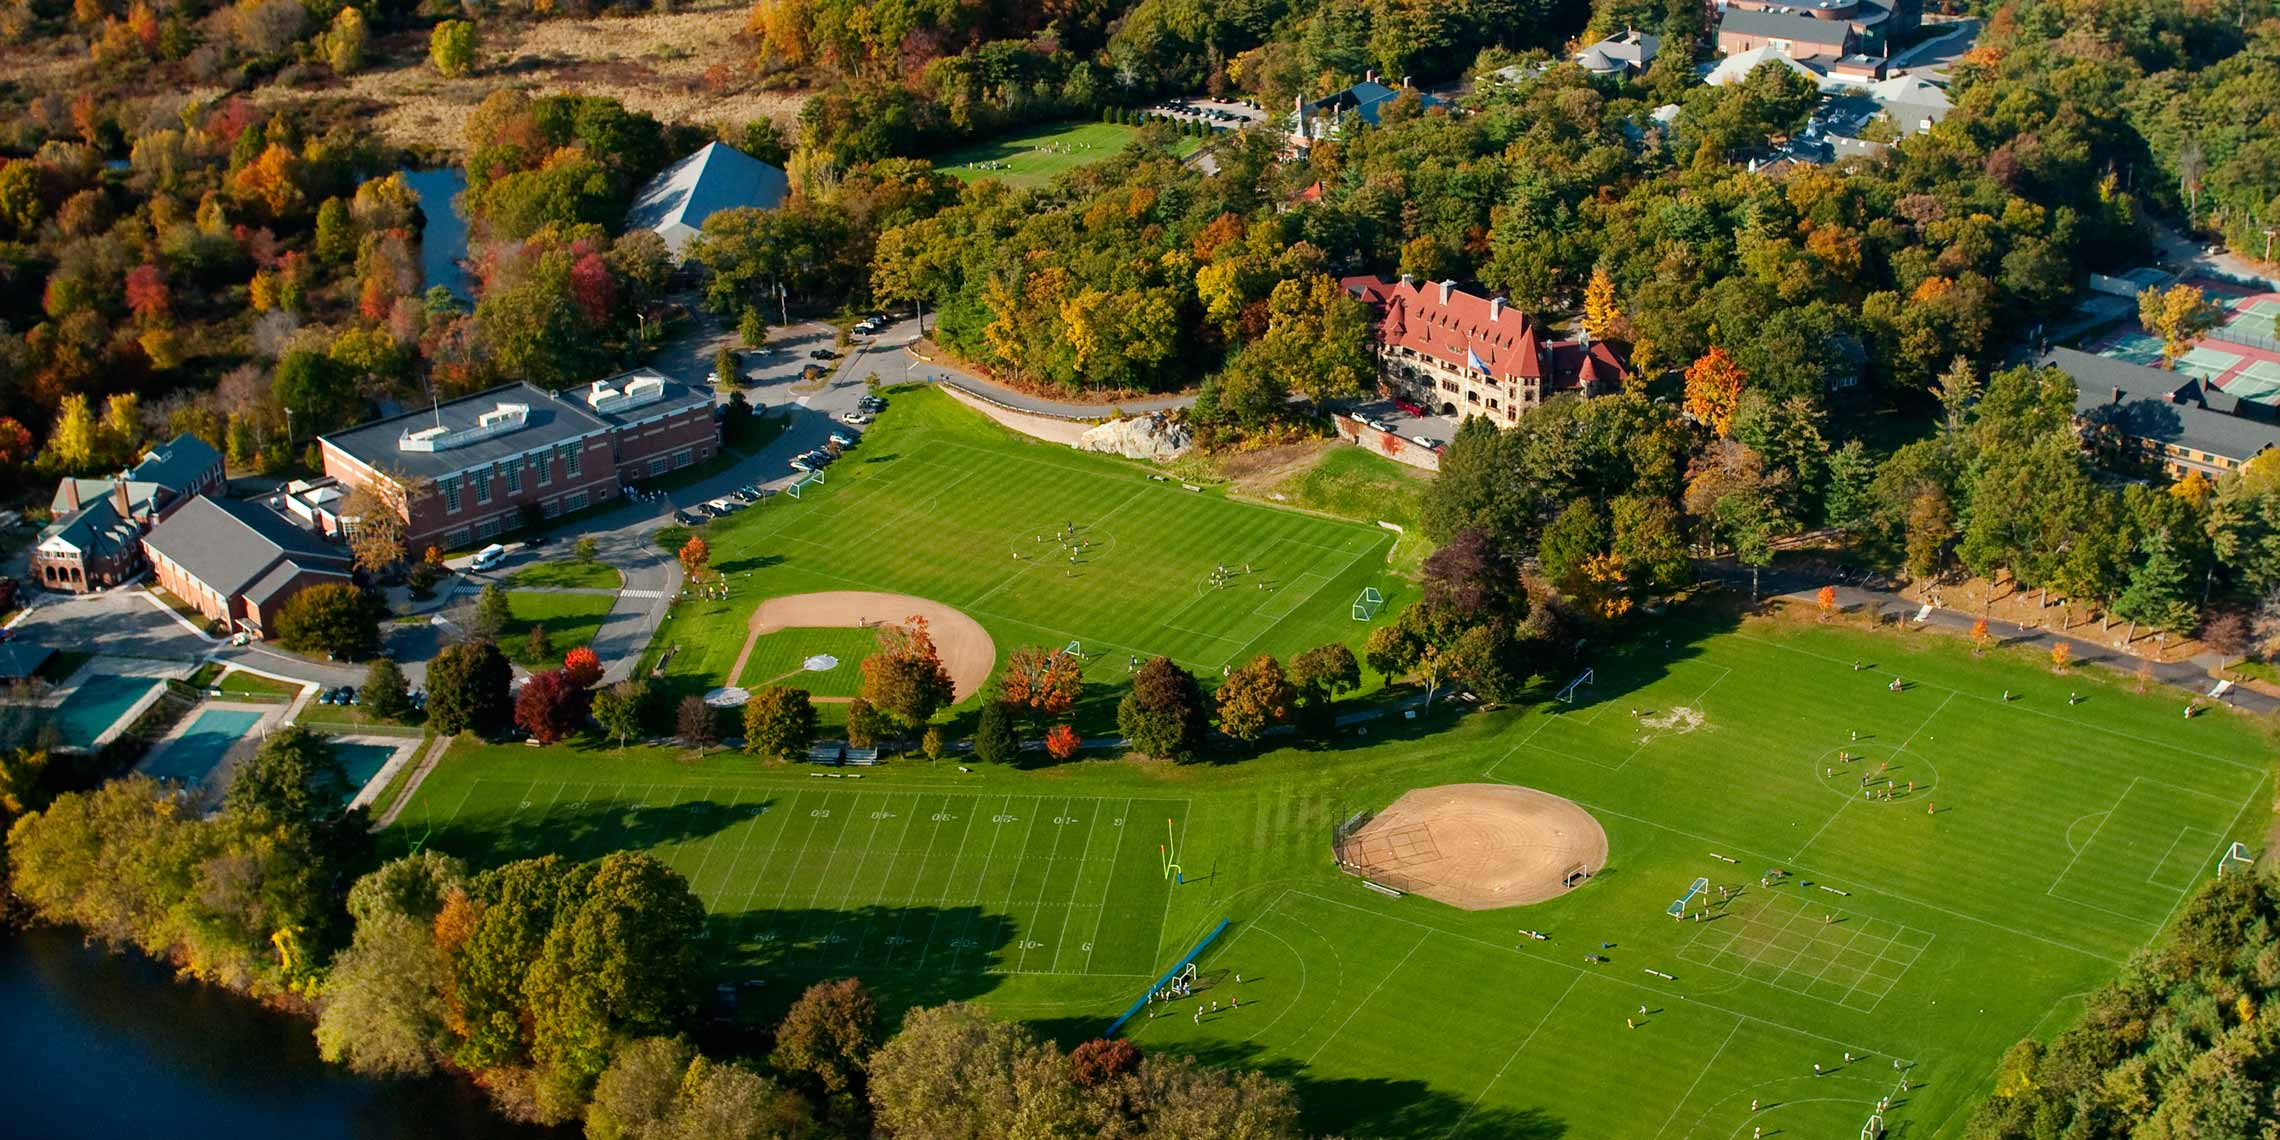 Aerial photograph of playing fields at Nobles and Greenough School